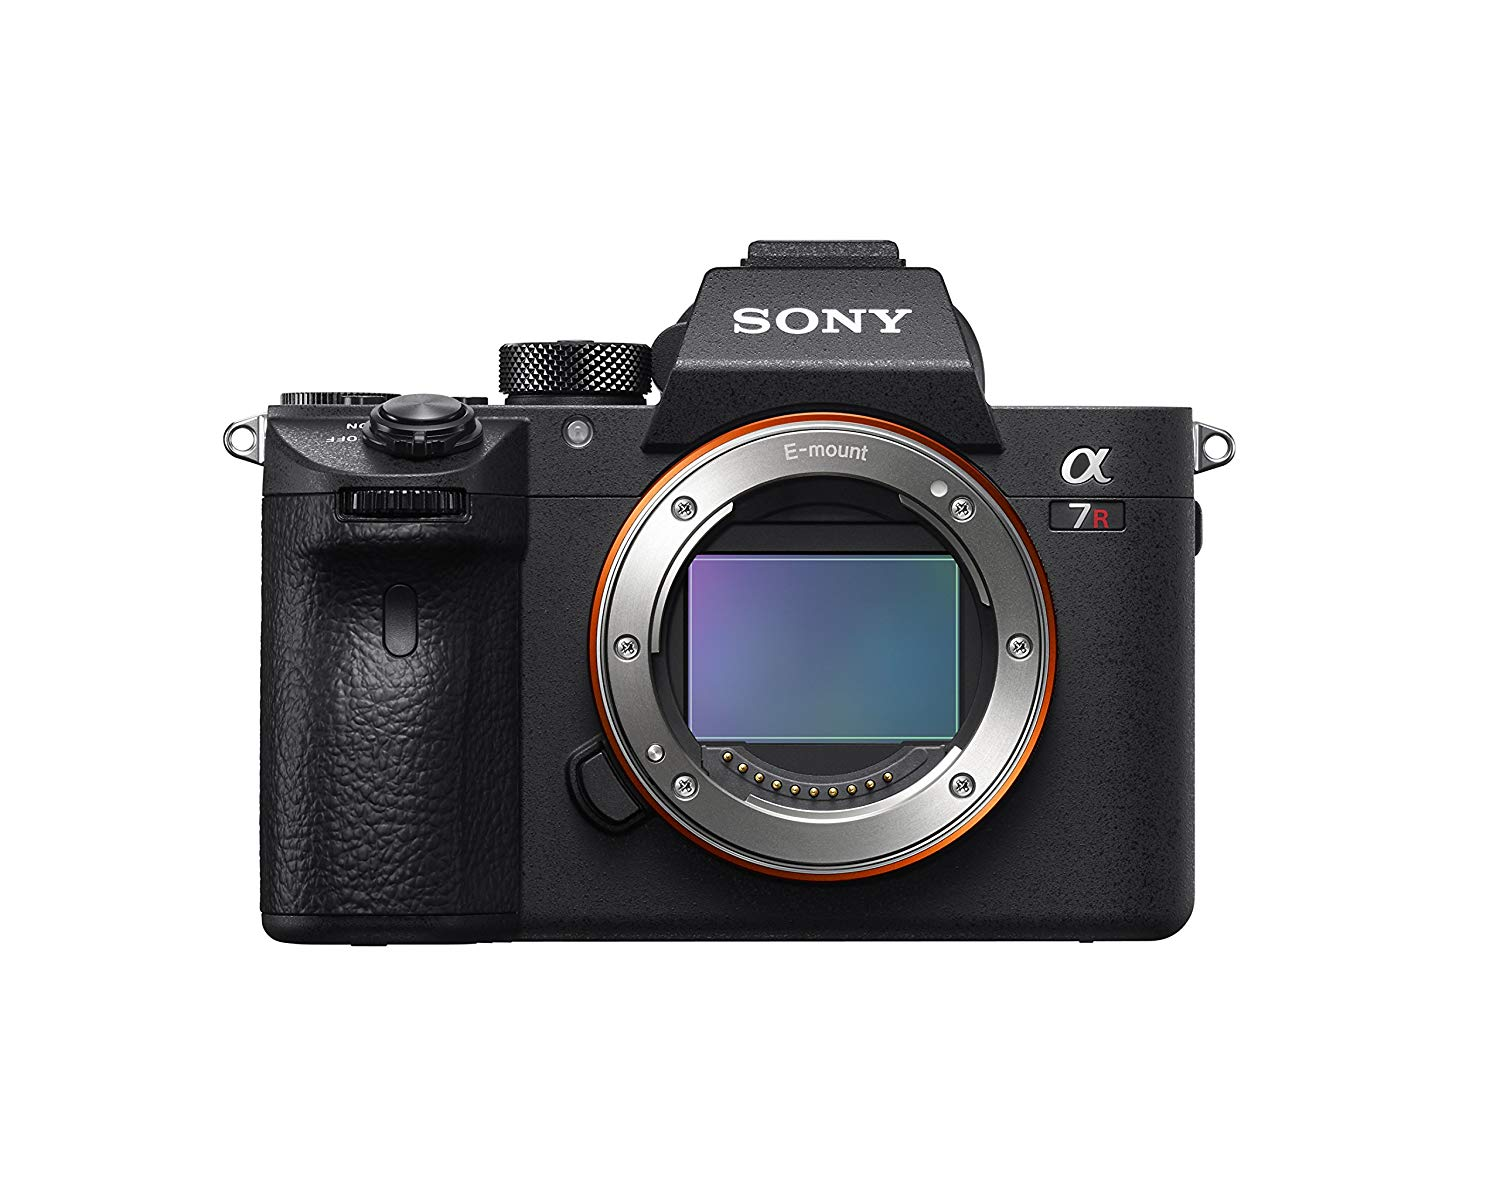 Sony a7R III 42.4MP Full-frame Mirrorless Interchangeab...